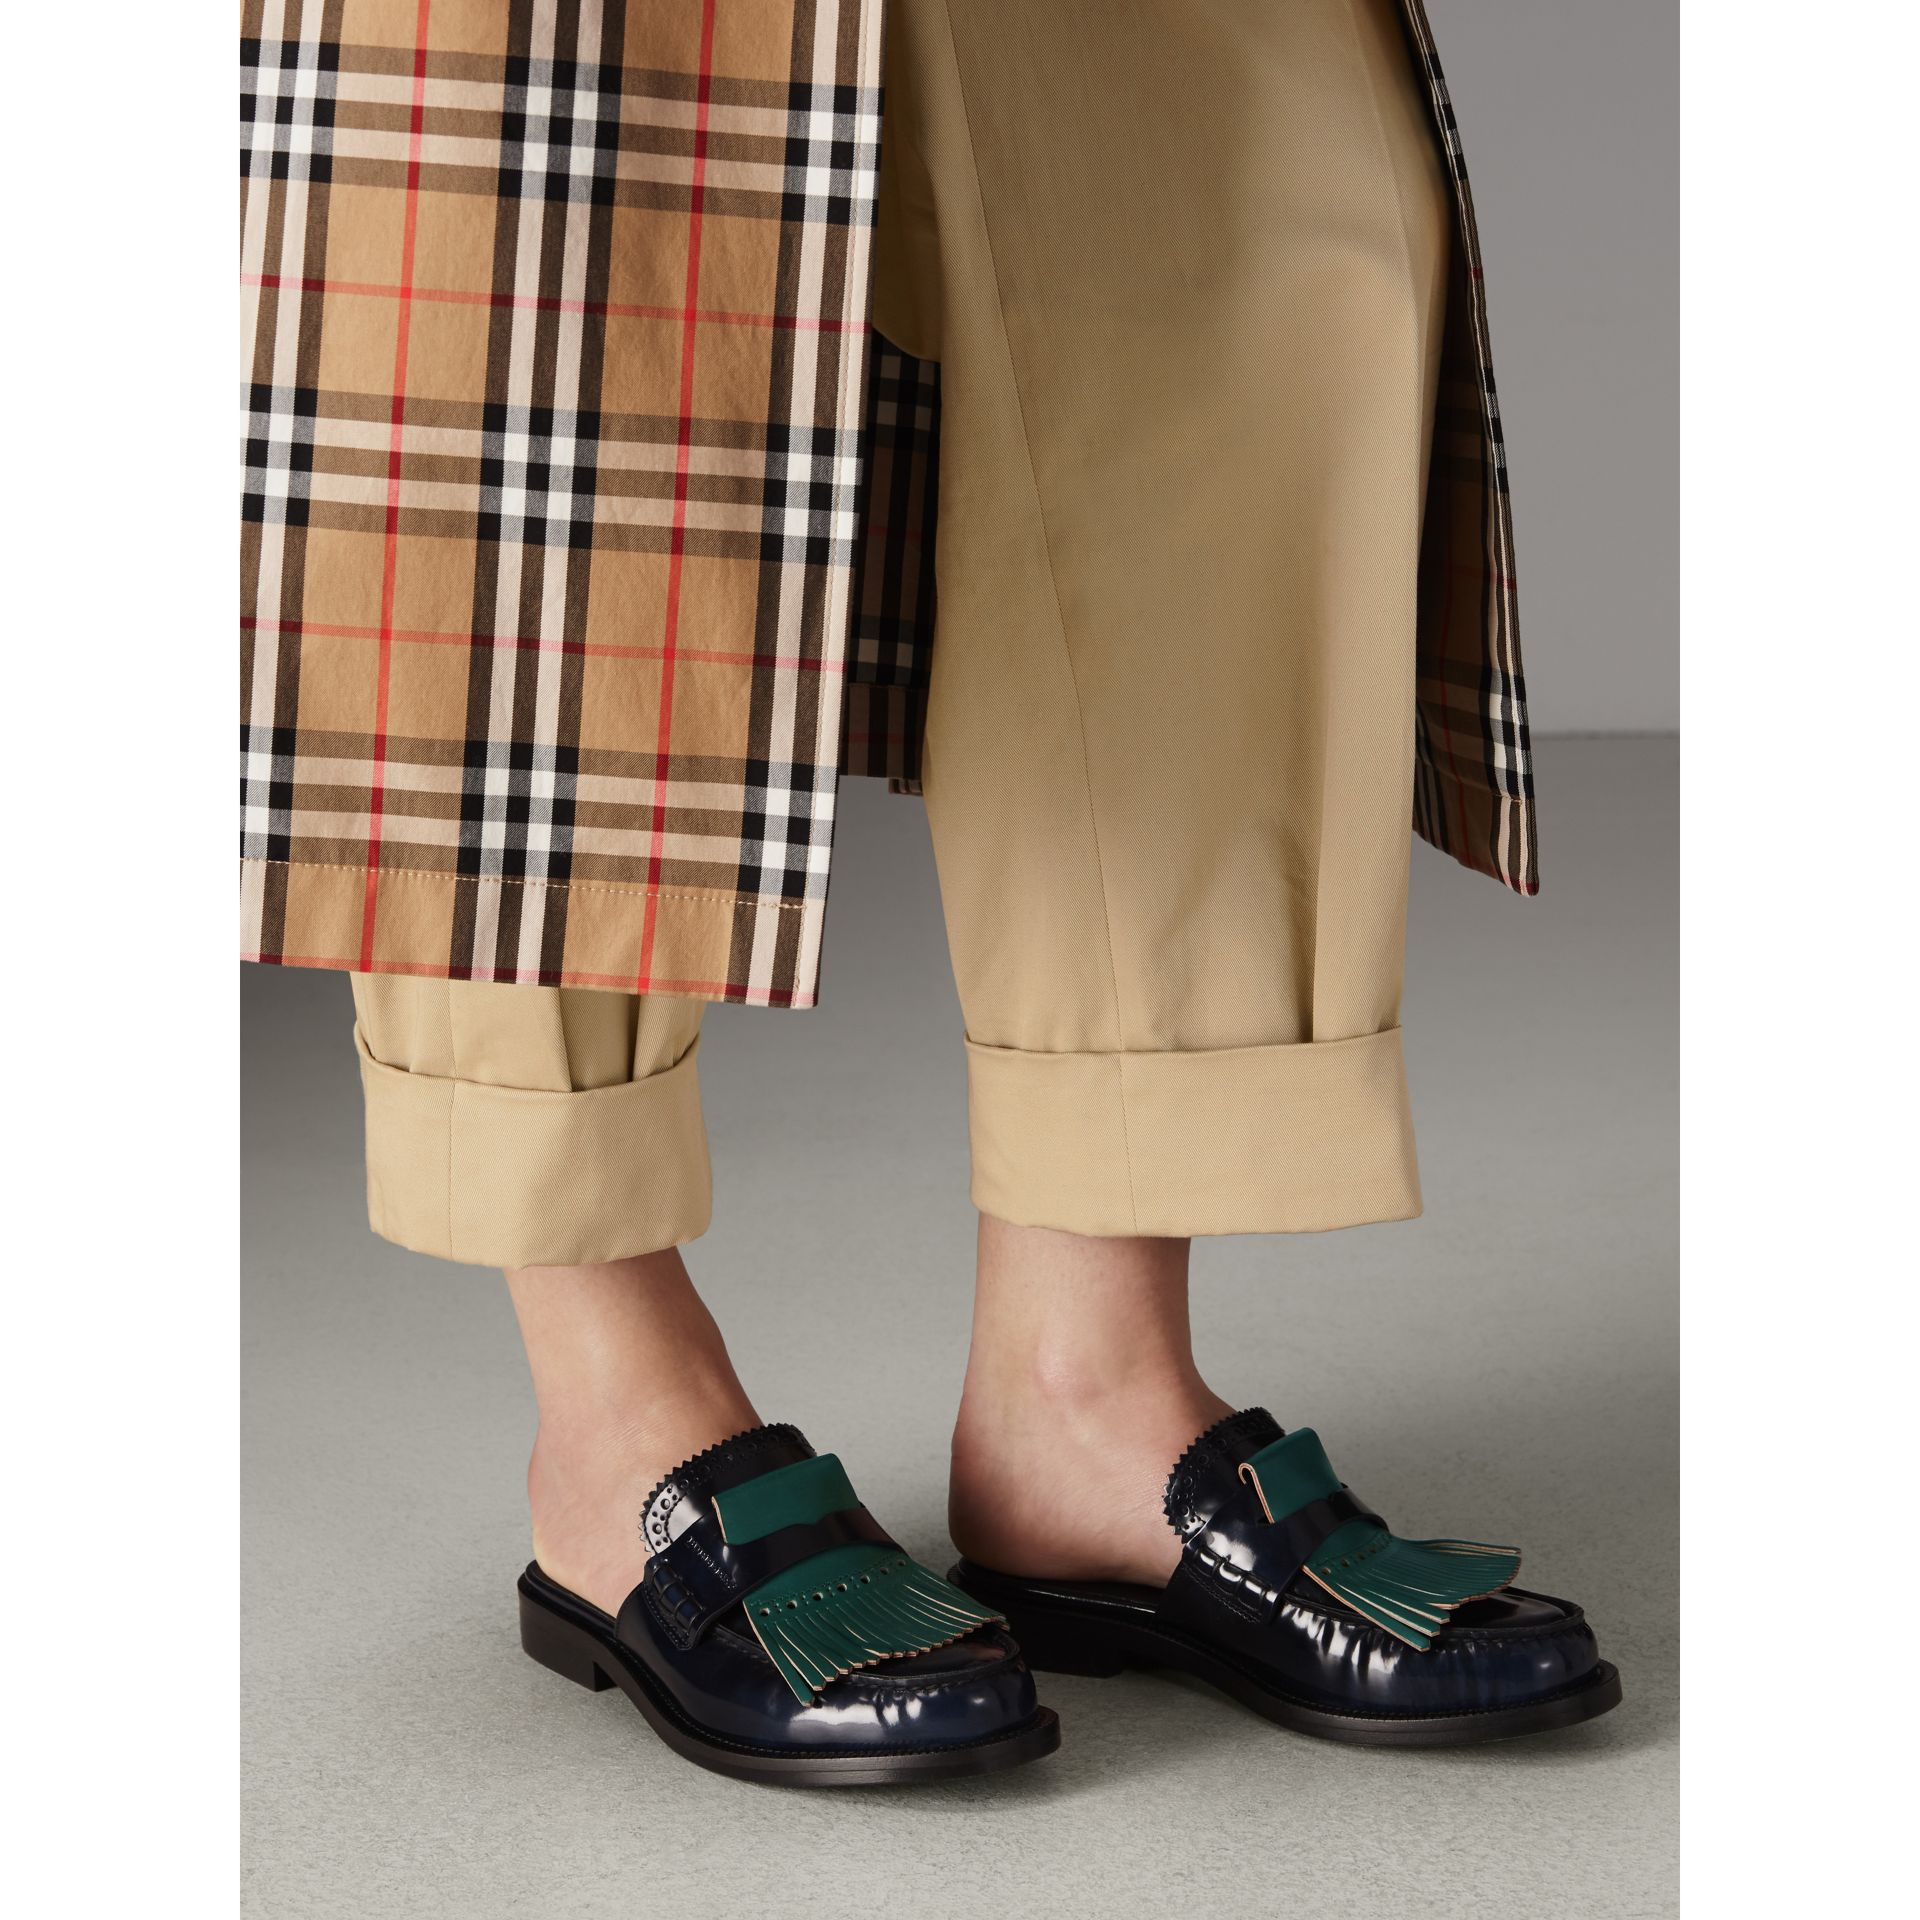 Contrast Kiltie Fringe Leather Mules in Navy - Women | Burberry - gallery image 2